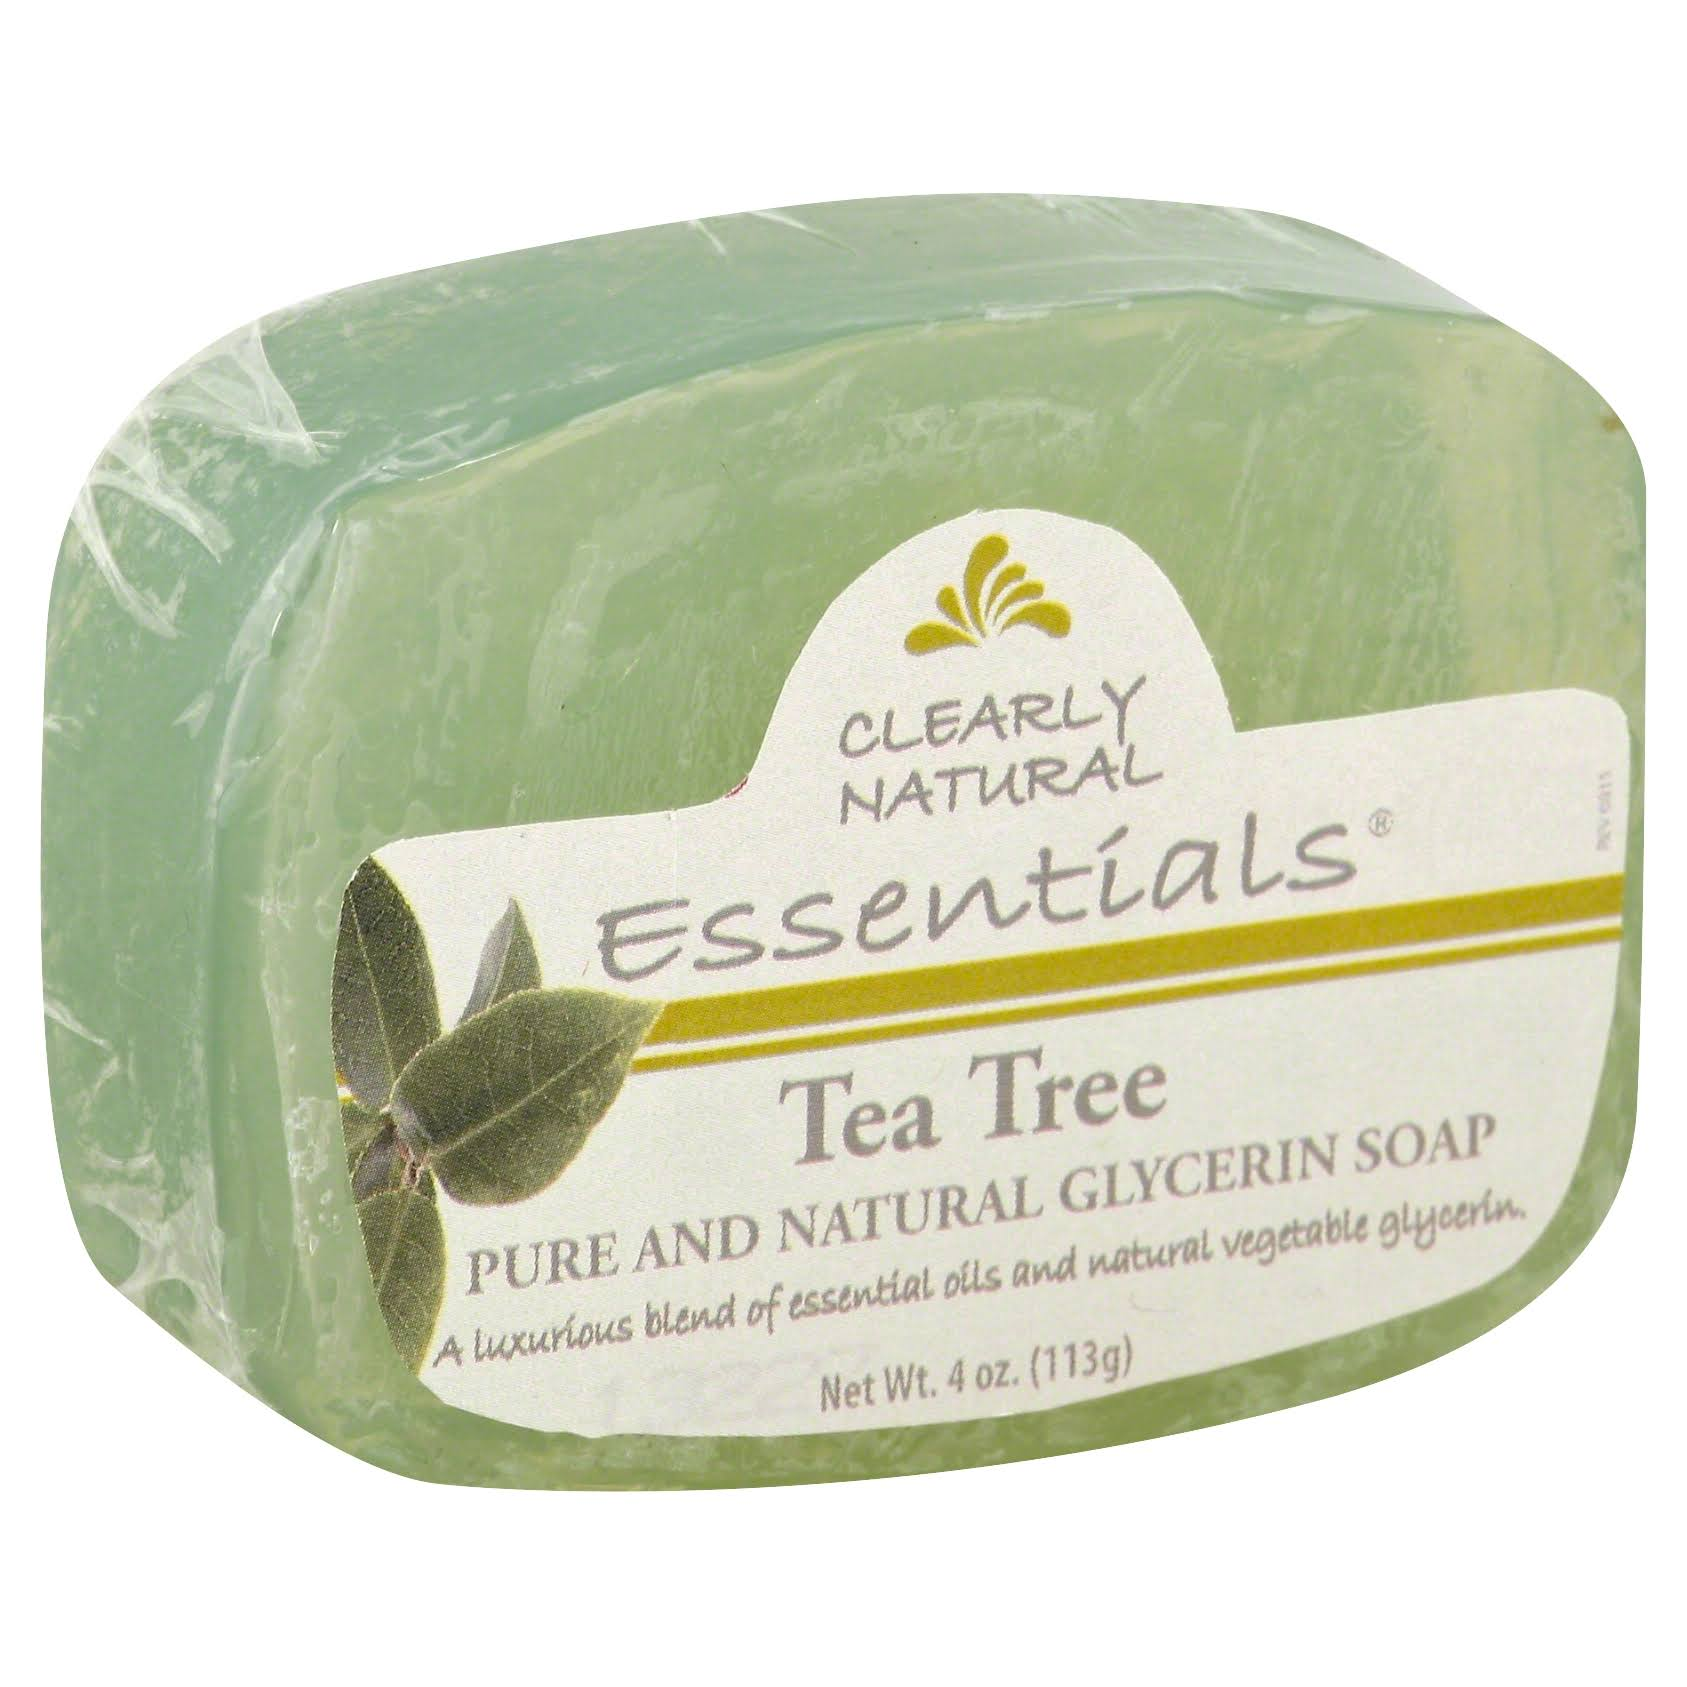 Clearly Natural Tea Tree Glycerine Soap